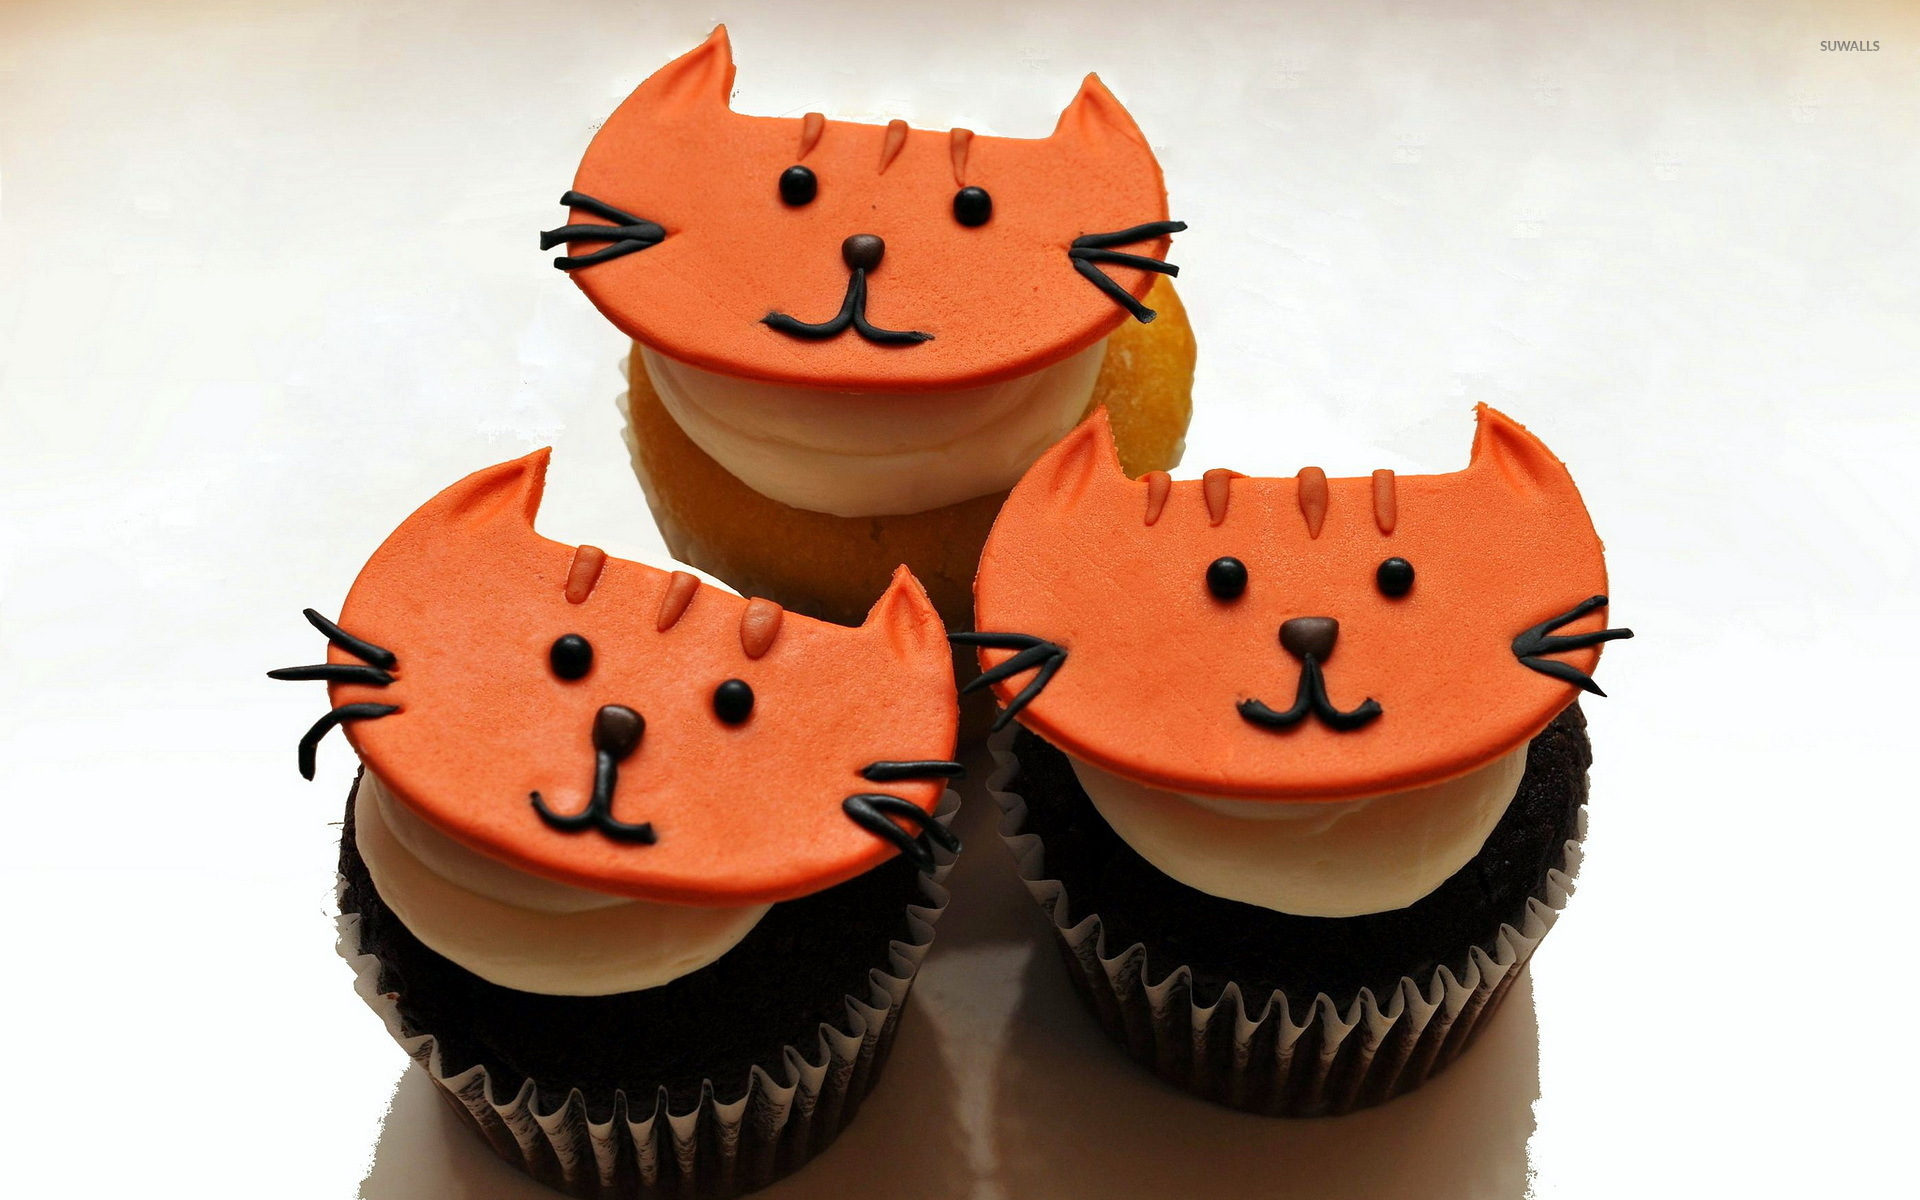 kitten cupcakes wallpaper - photography wallpapers - #41609